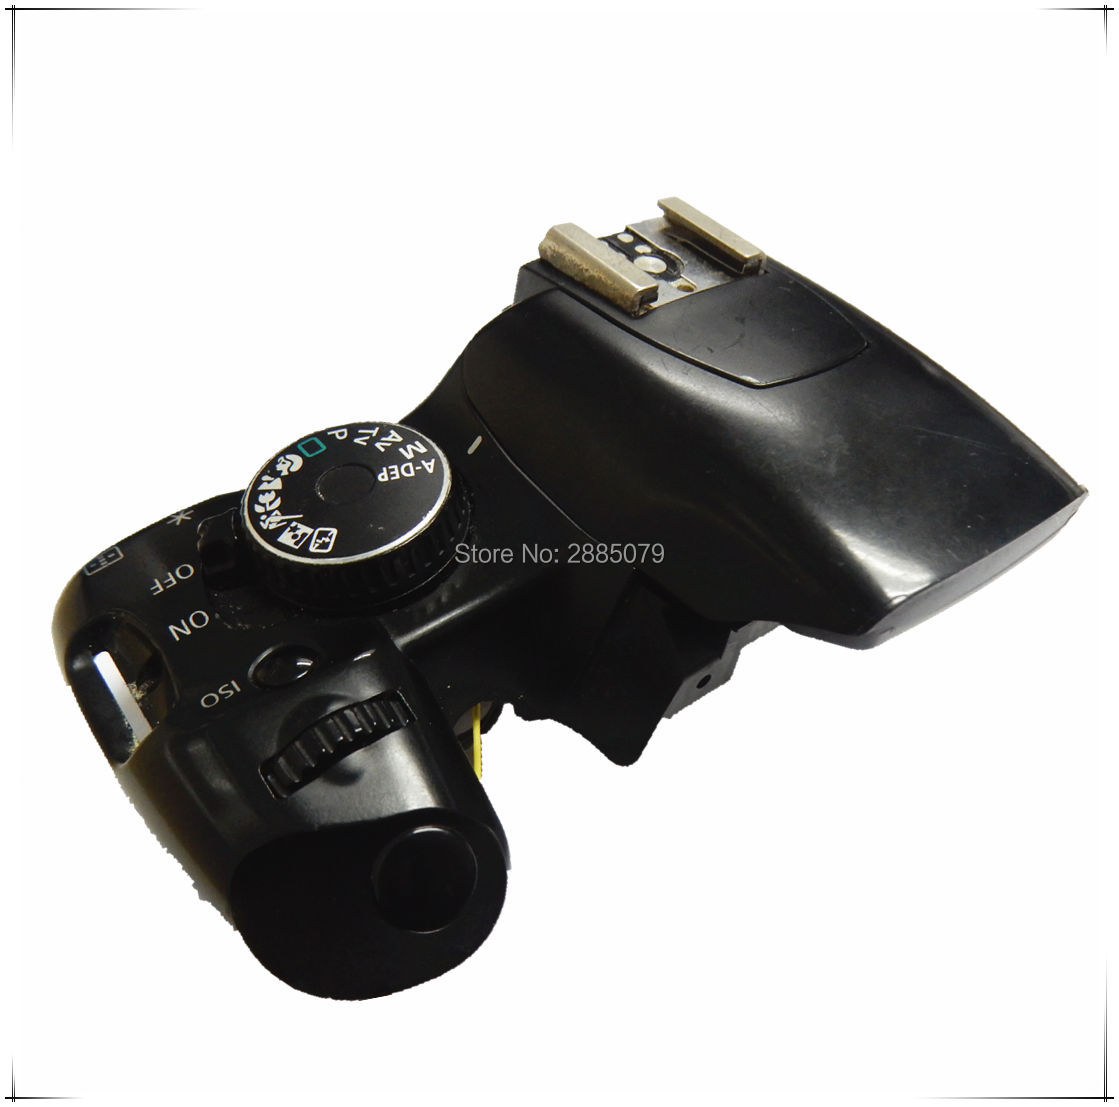 Camera Repair Replacement Parts Digital Rebel XSi FOR EOS KISS X2 FOR EOS 450D Top Cover For Canon